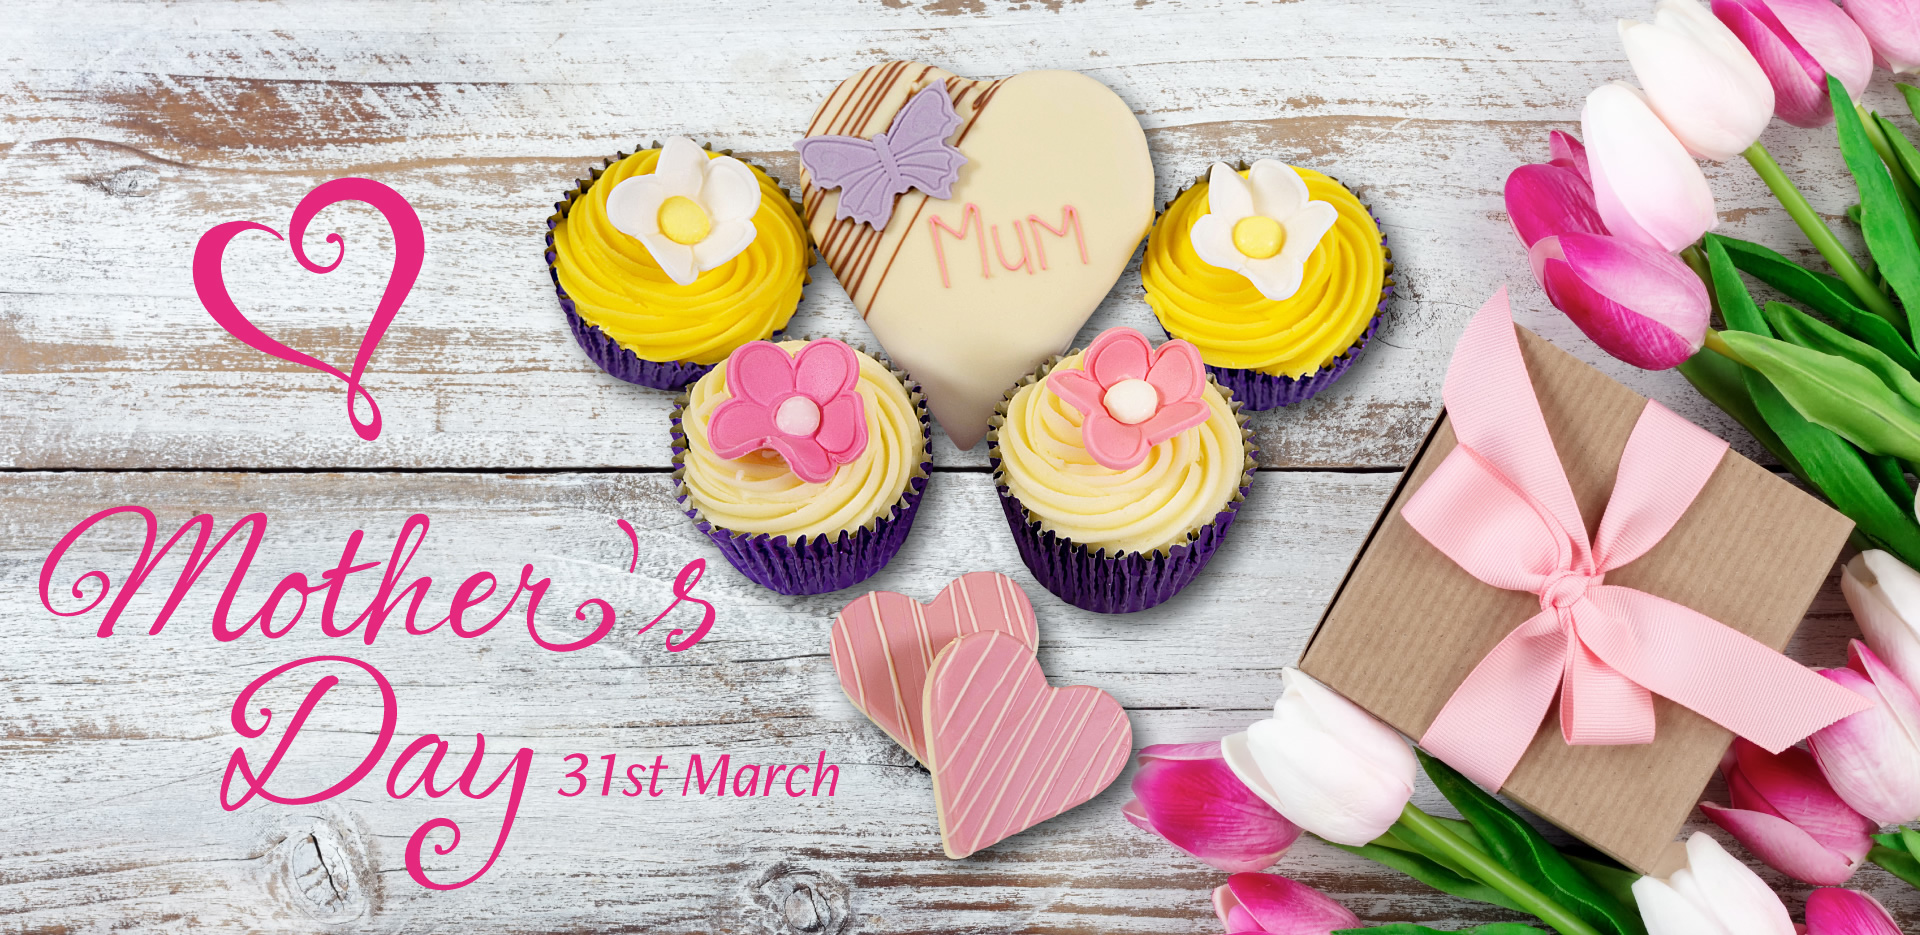 Mother's Day - 31st March